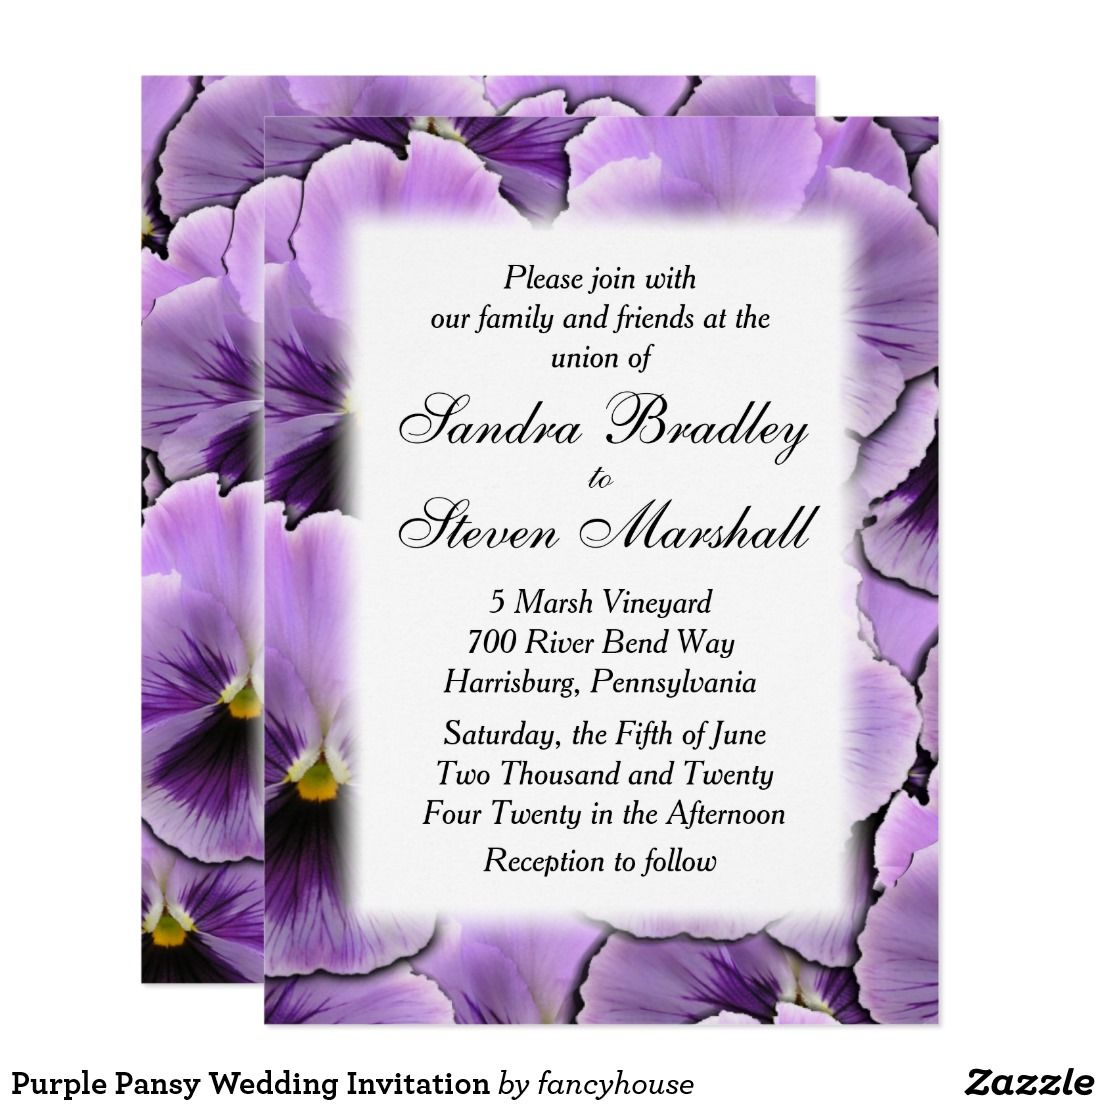 Purple Pansy Wedding Invitation | Wedding Invitations | Pinterest ...